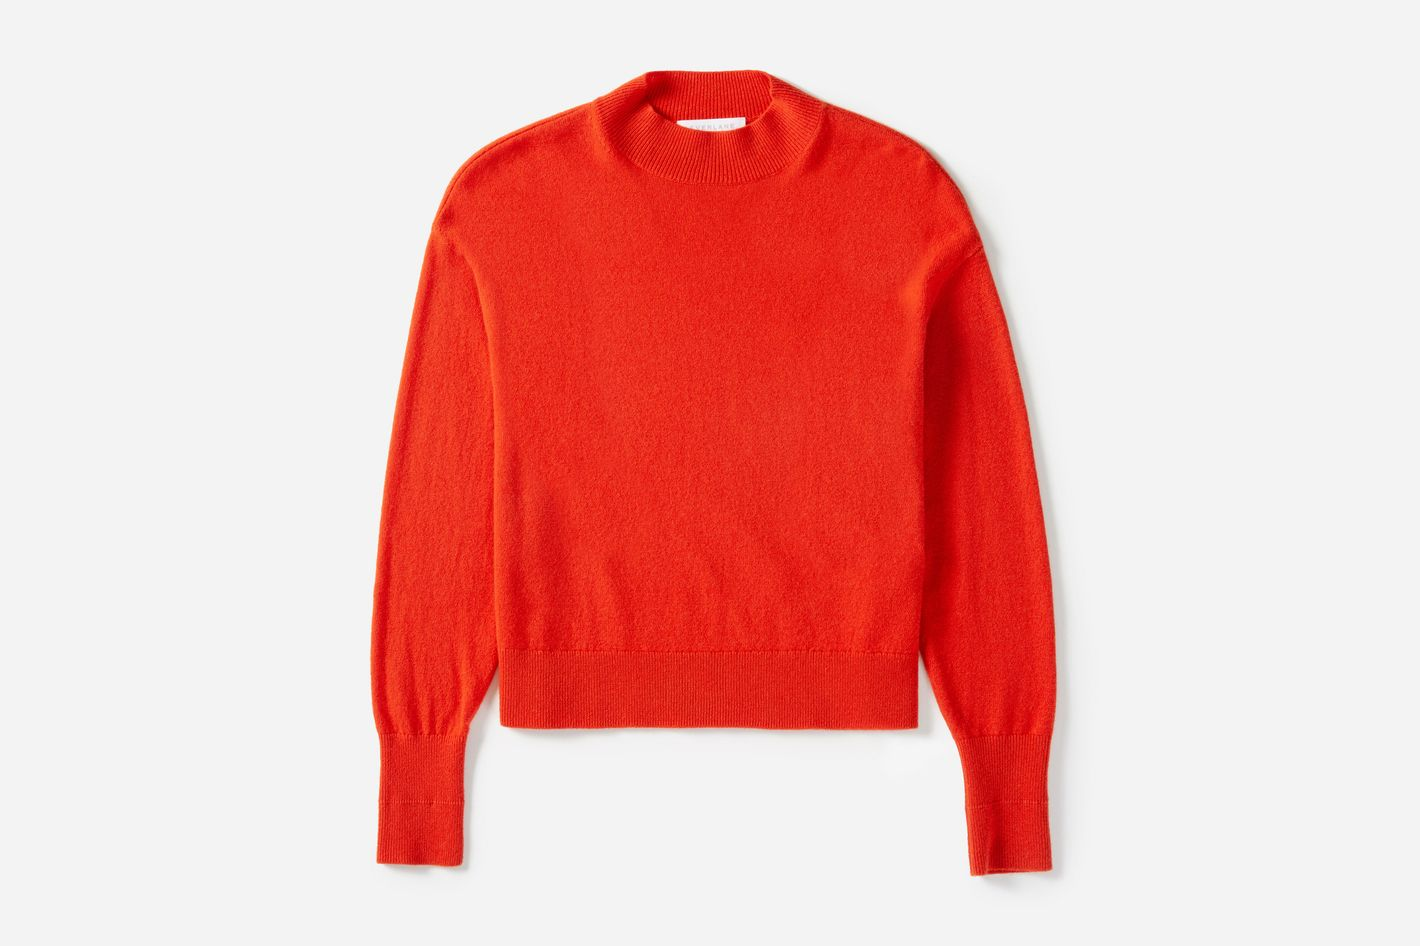 Cashmere Crop Mock in Persimmon